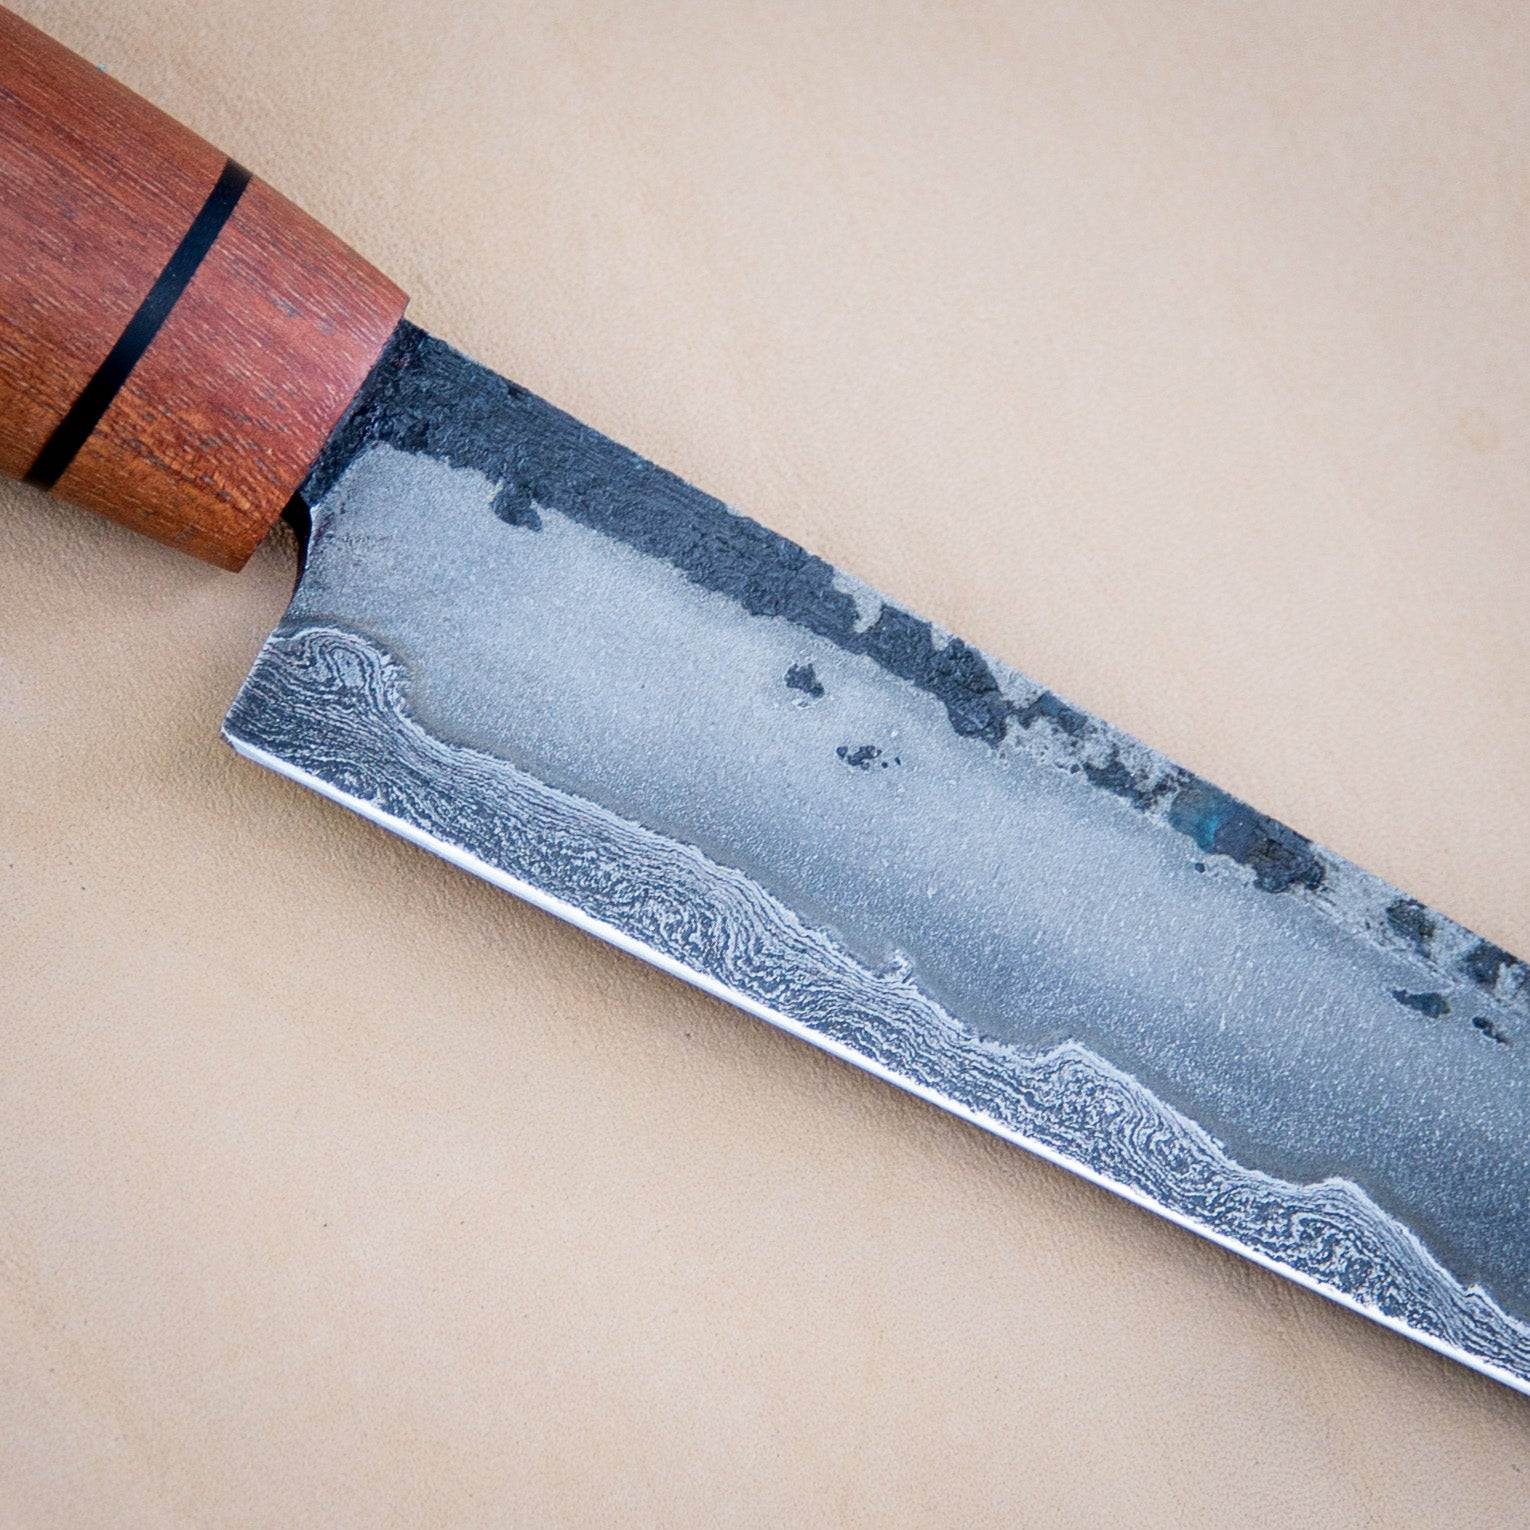 K-tip San Mai Carving Knife